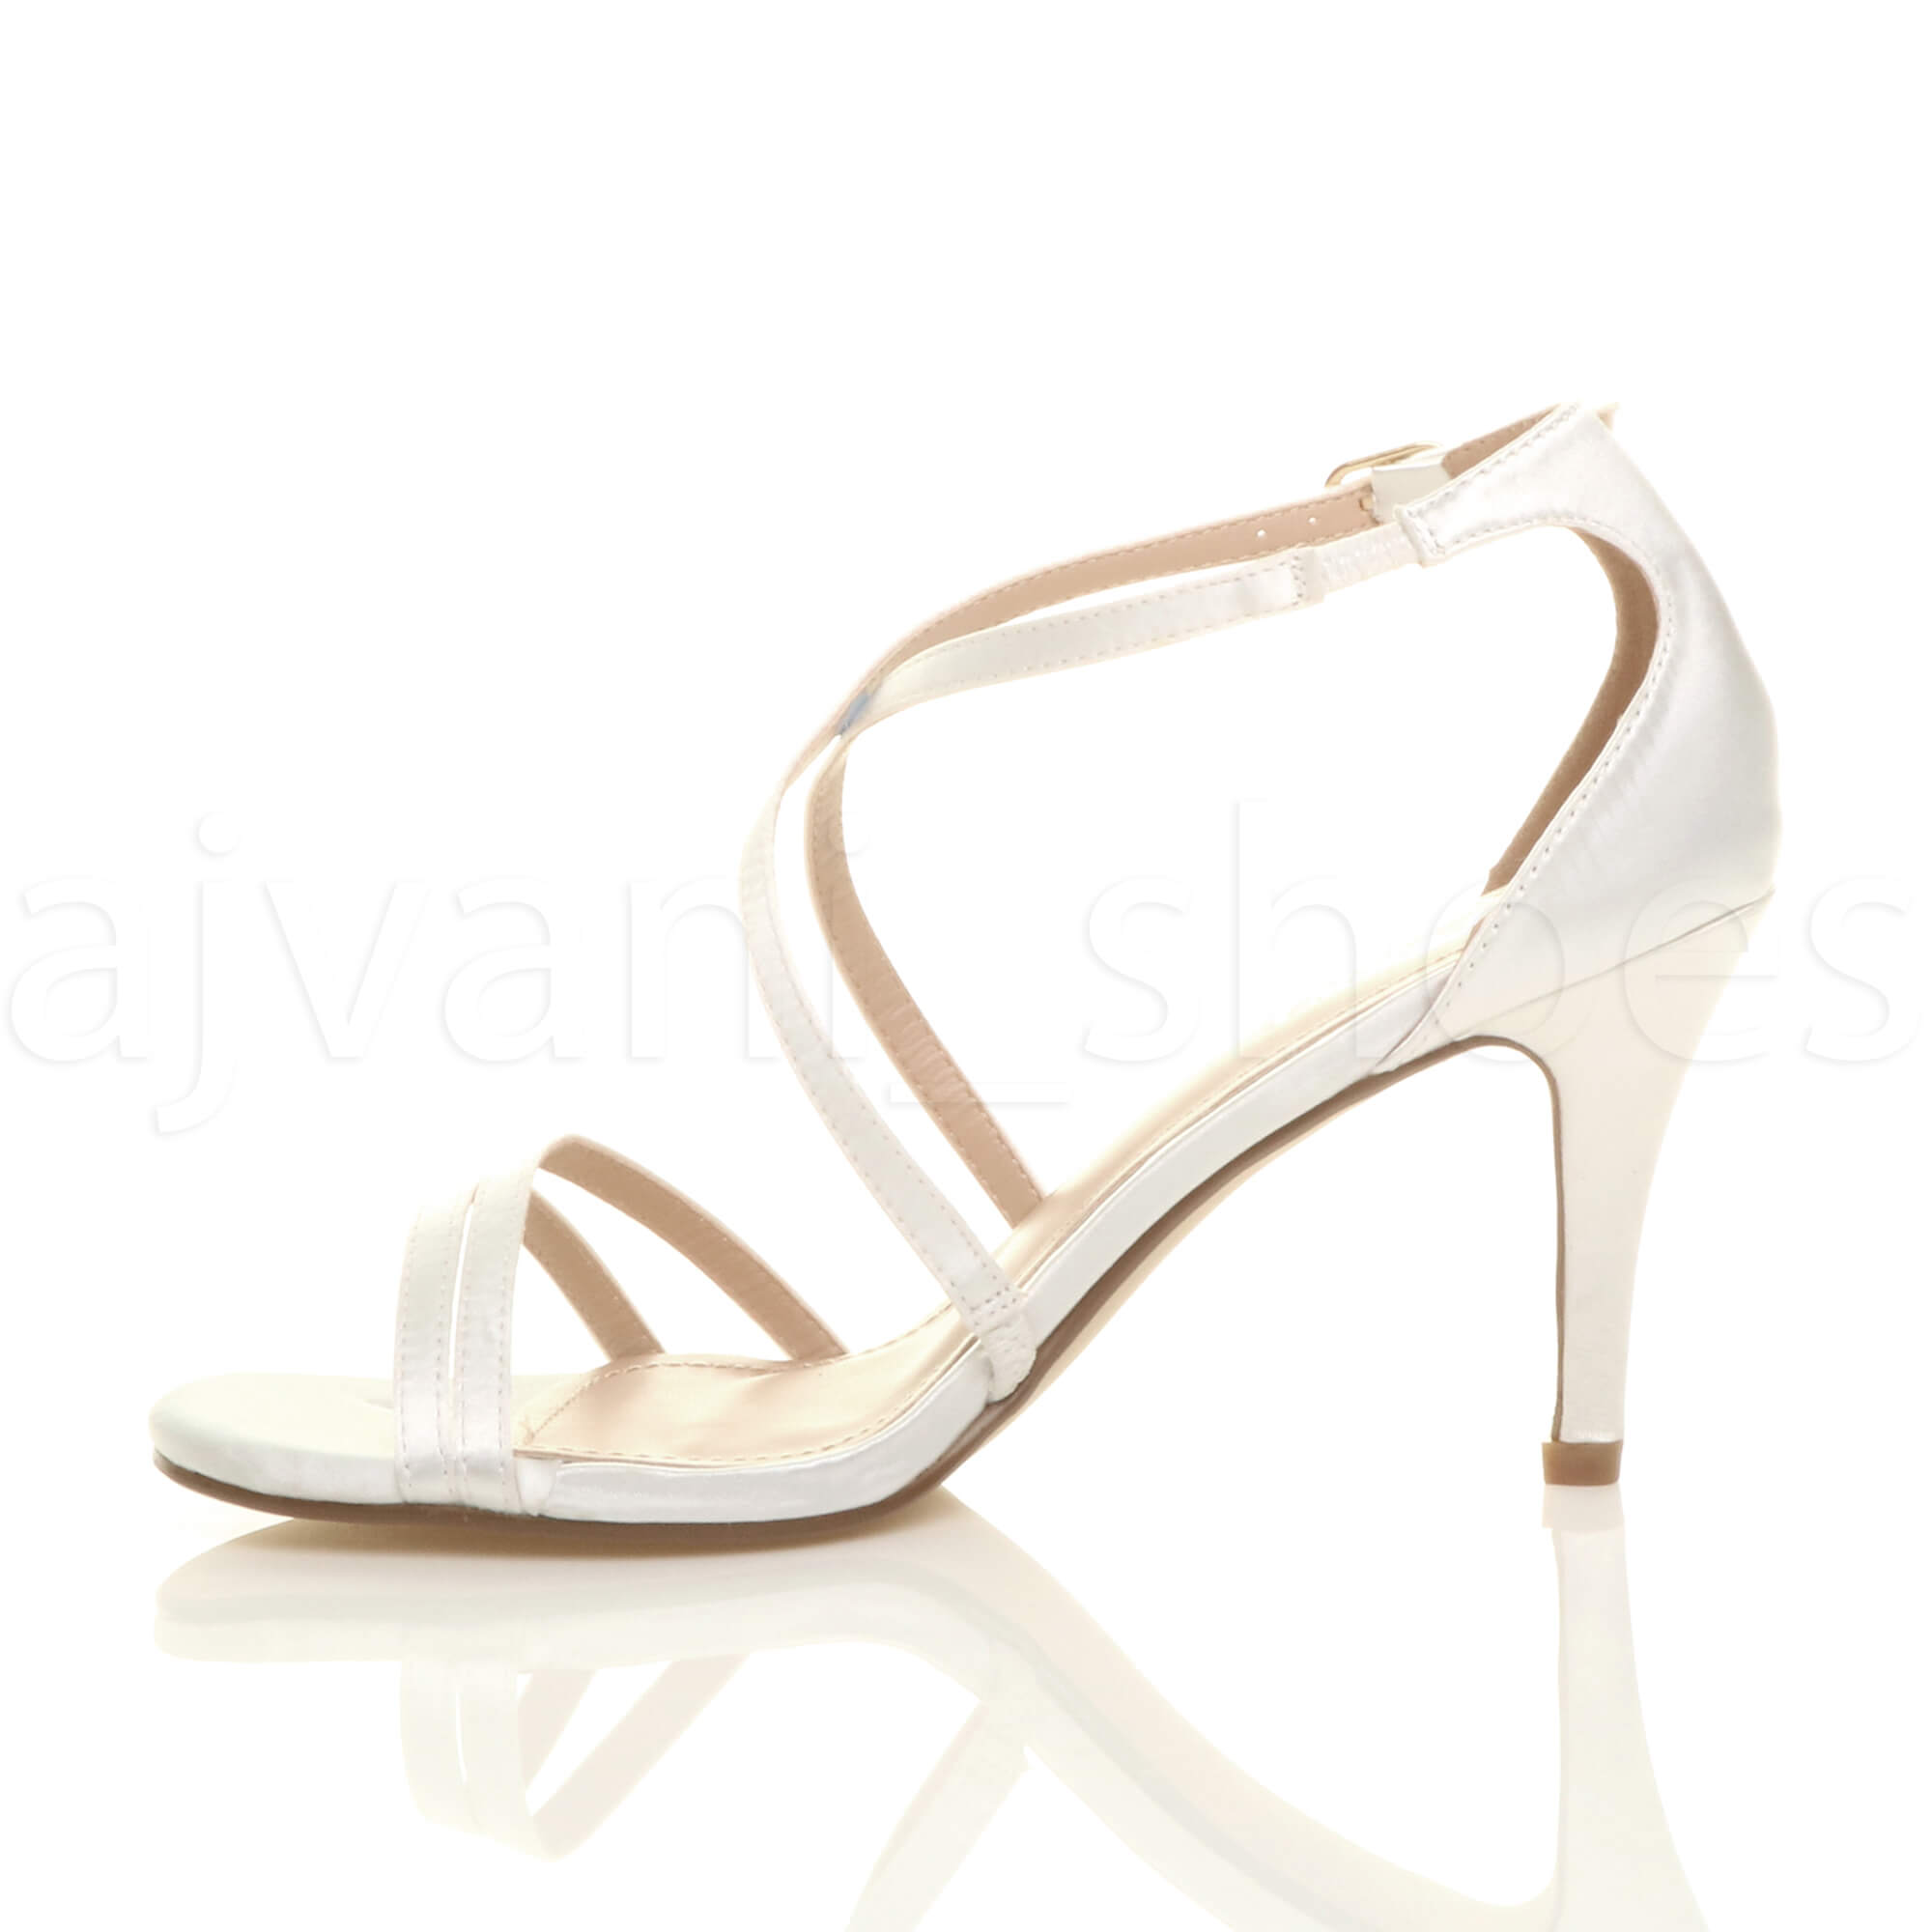 WOMENS-LADIES-MID-HIGH-HEEL-STRAPPY-CROSSOVER-WEDDING-PROM-SANDALS-SHOES-SIZE thumbnail 172